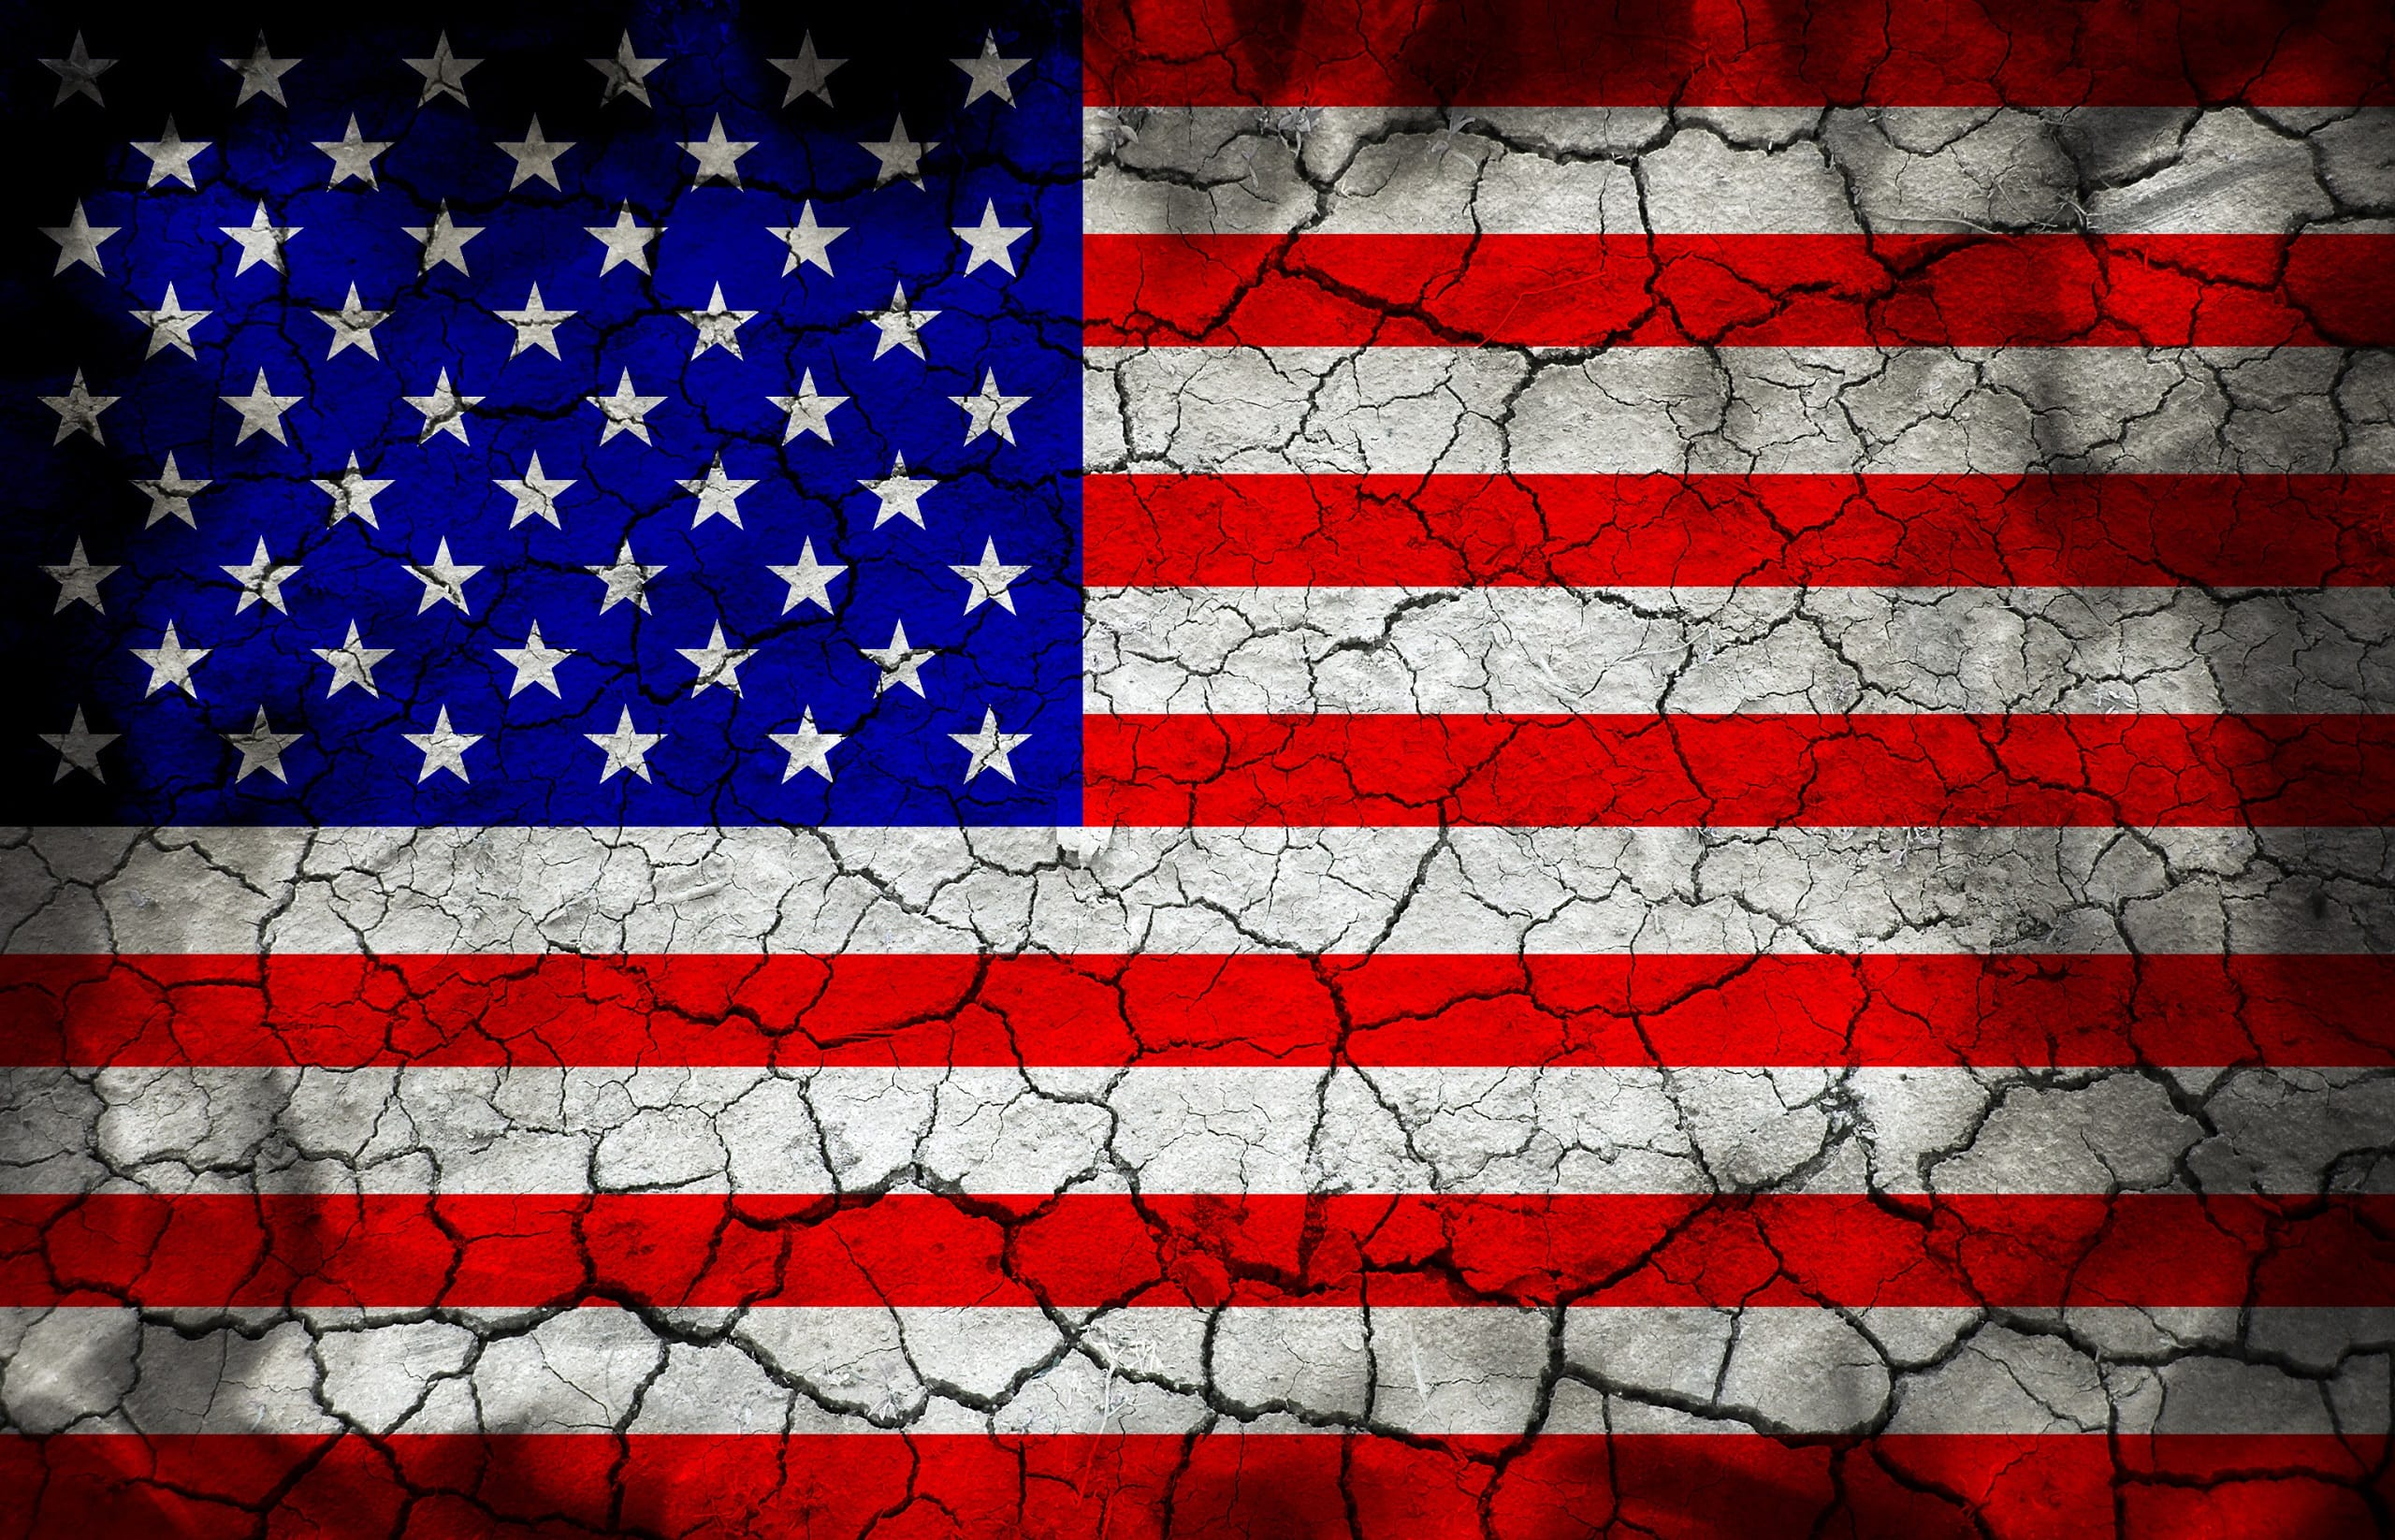 A crumbling United States Flag